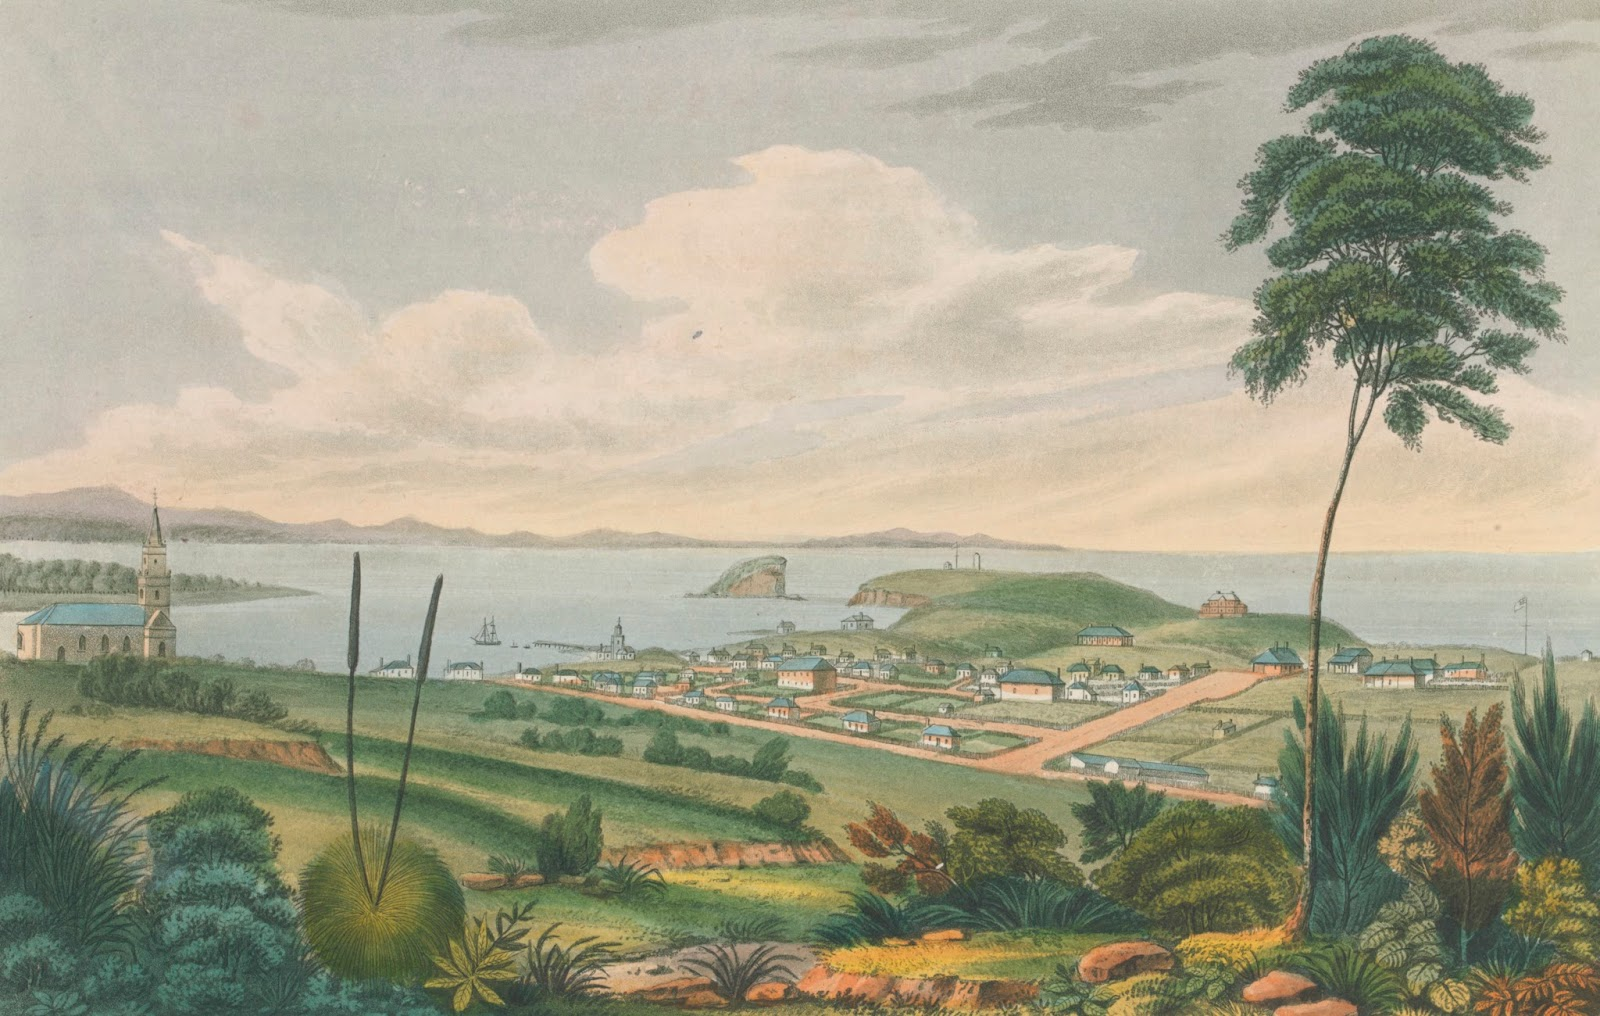 Newcastle, New South Wales 1824; Joseph Lycett 1774?-1828; Publisher J. Souter London